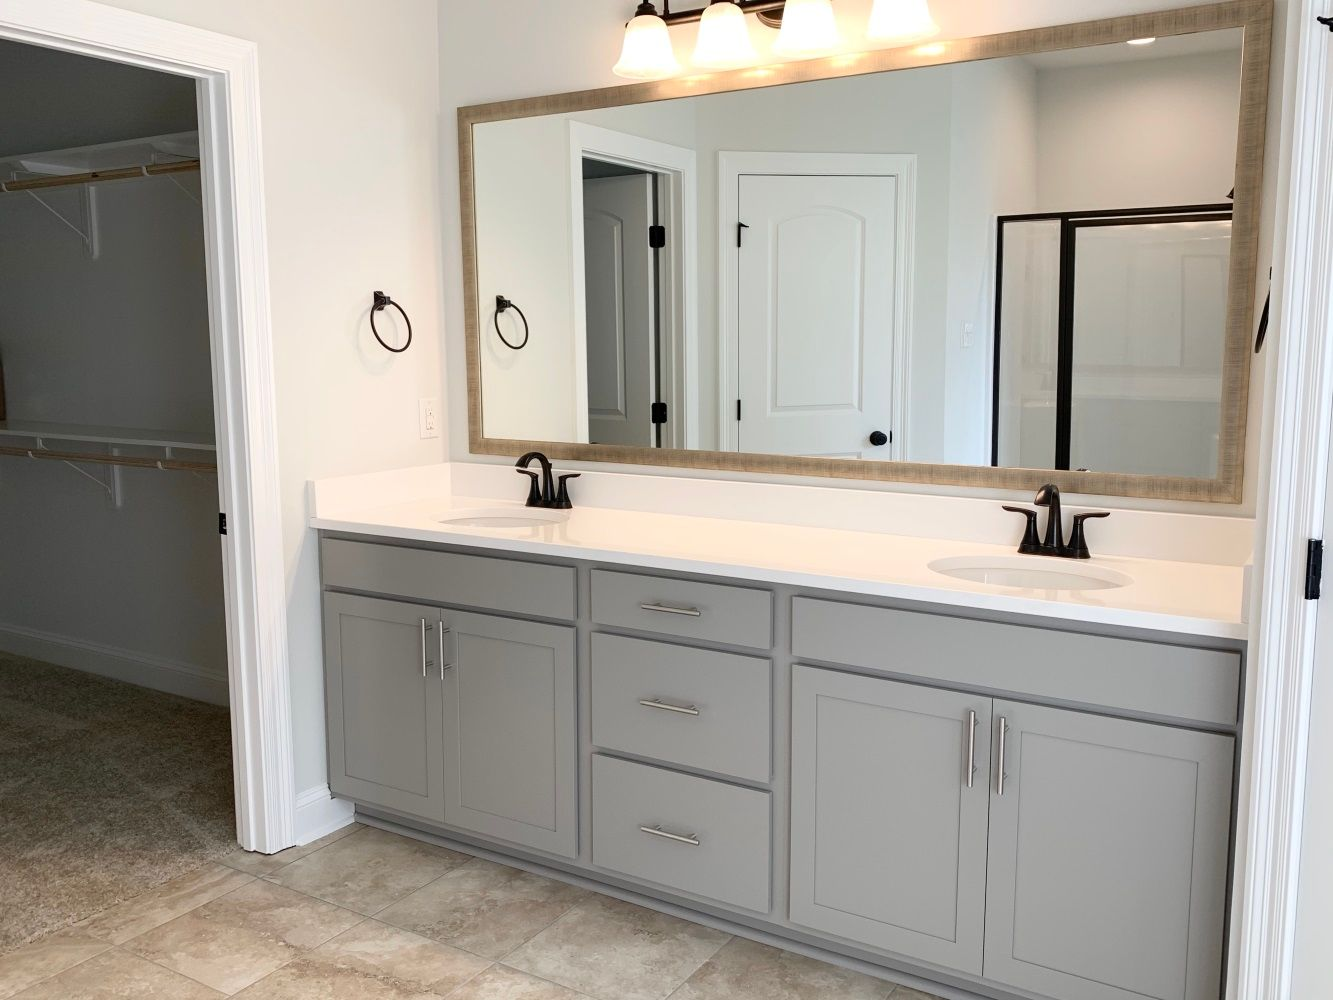 Bathroom featured in the Dante III A - PB By DSLD Homes - Louisiana in Baton Rouge, LA